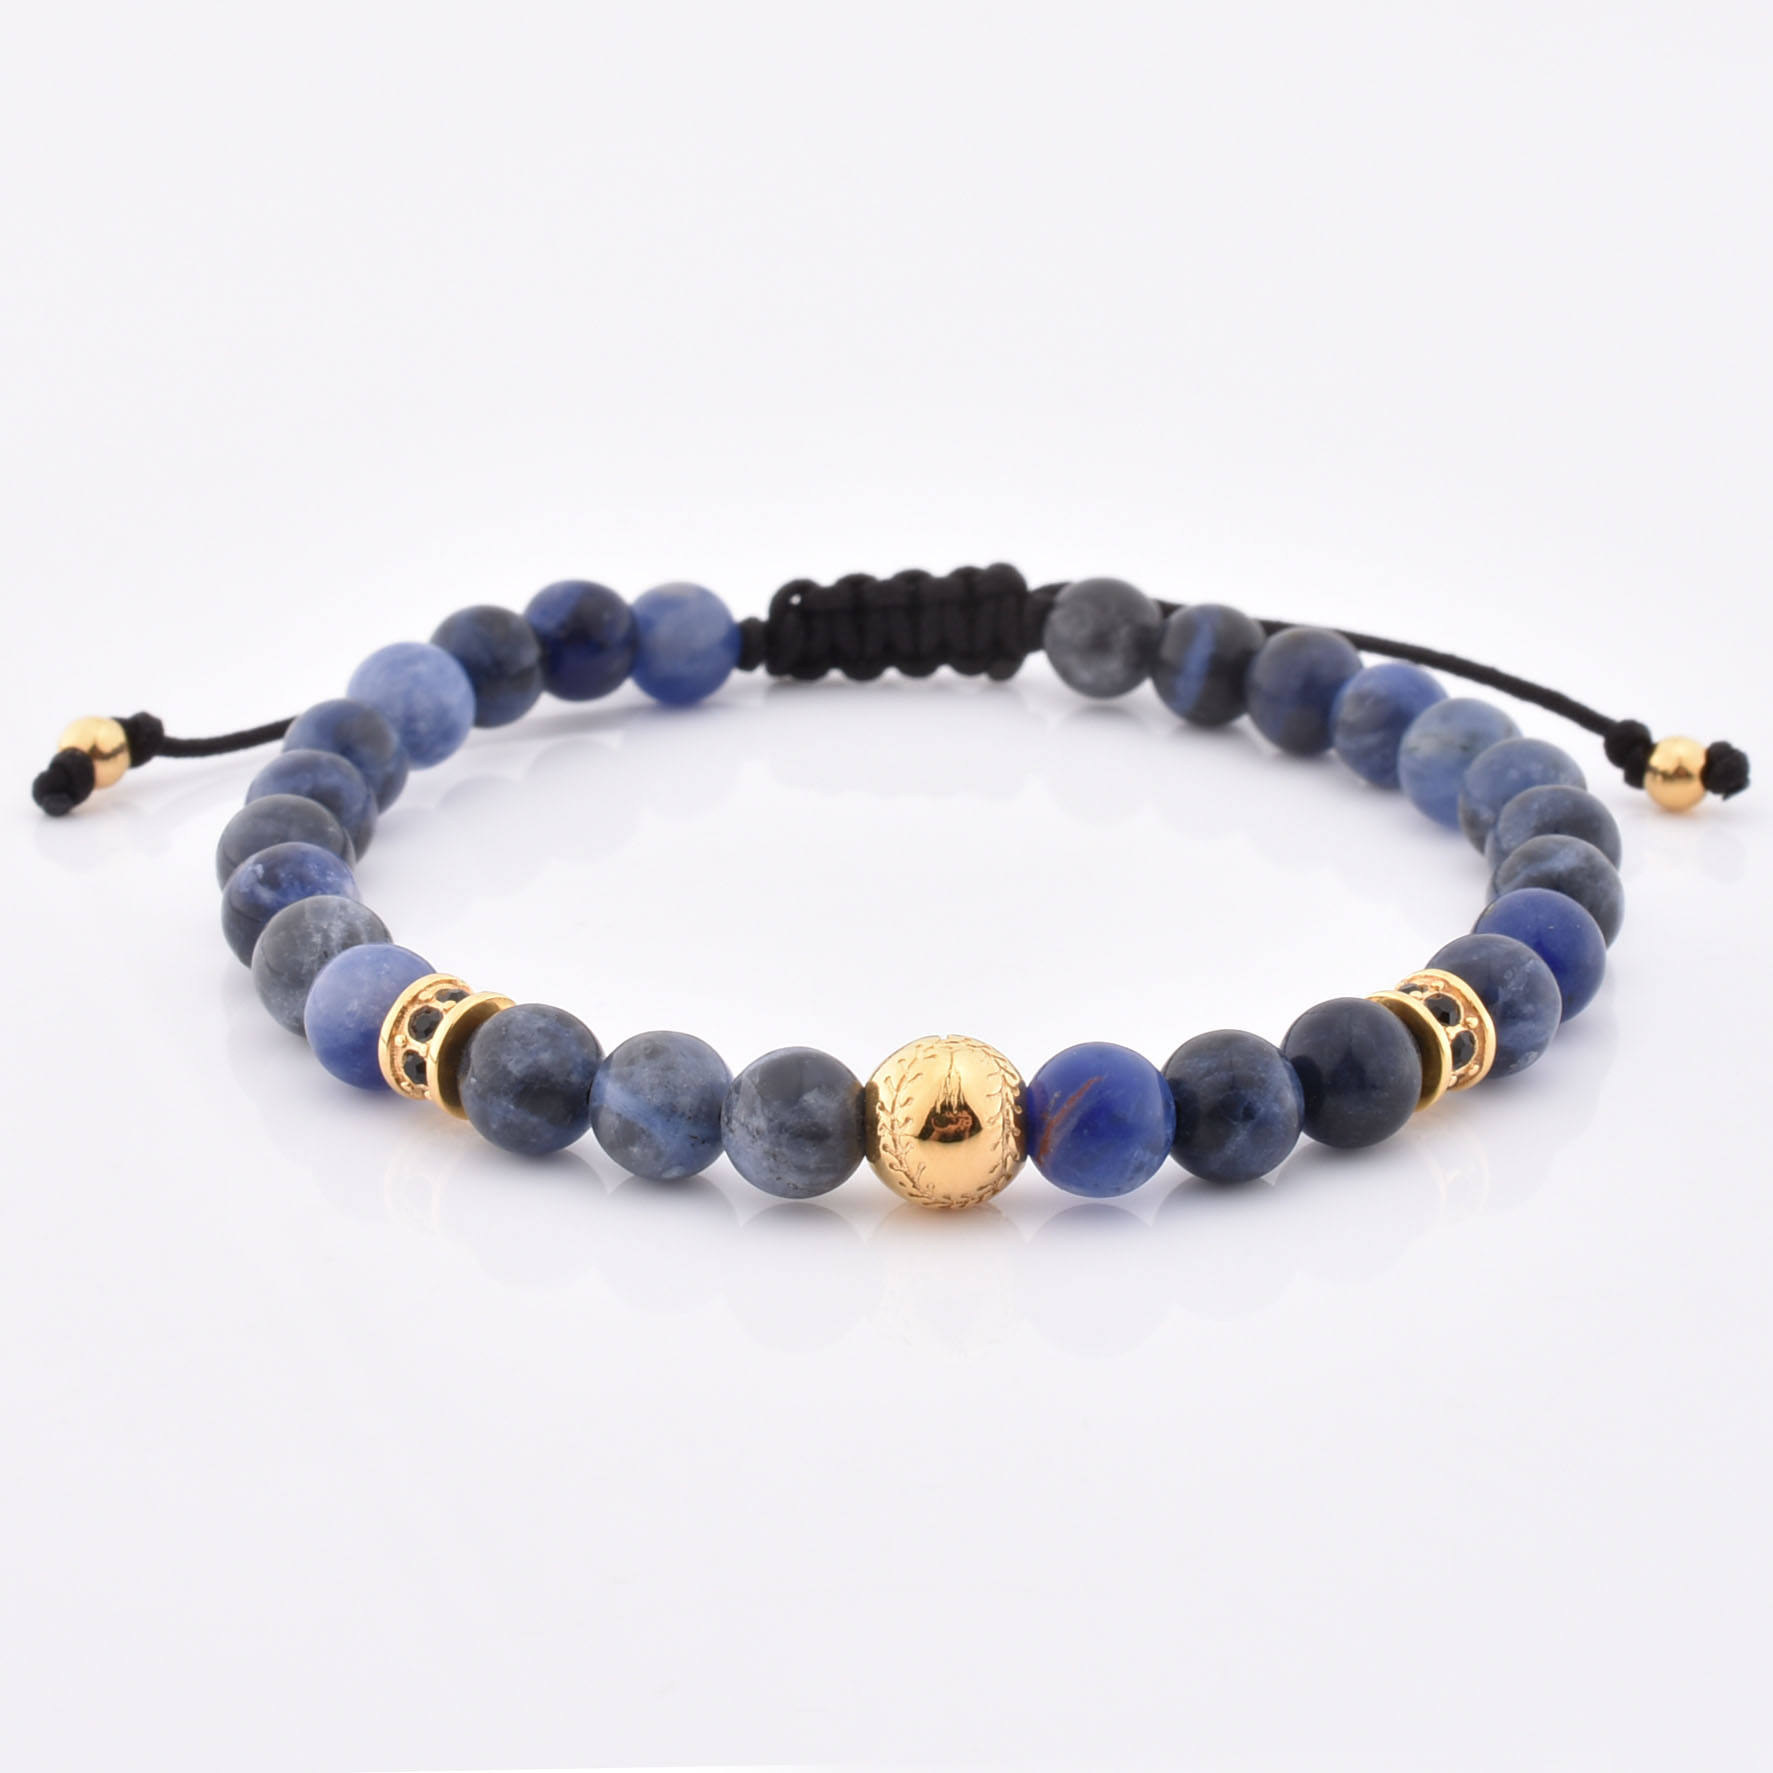 Regolabile In Acciaio Inox Bead Opaco <span class=keywords><strong>Sodalite</strong></span> Perline Fatti A Mano <span class=keywords><strong>Braccialetto</strong></span> Personalizzato